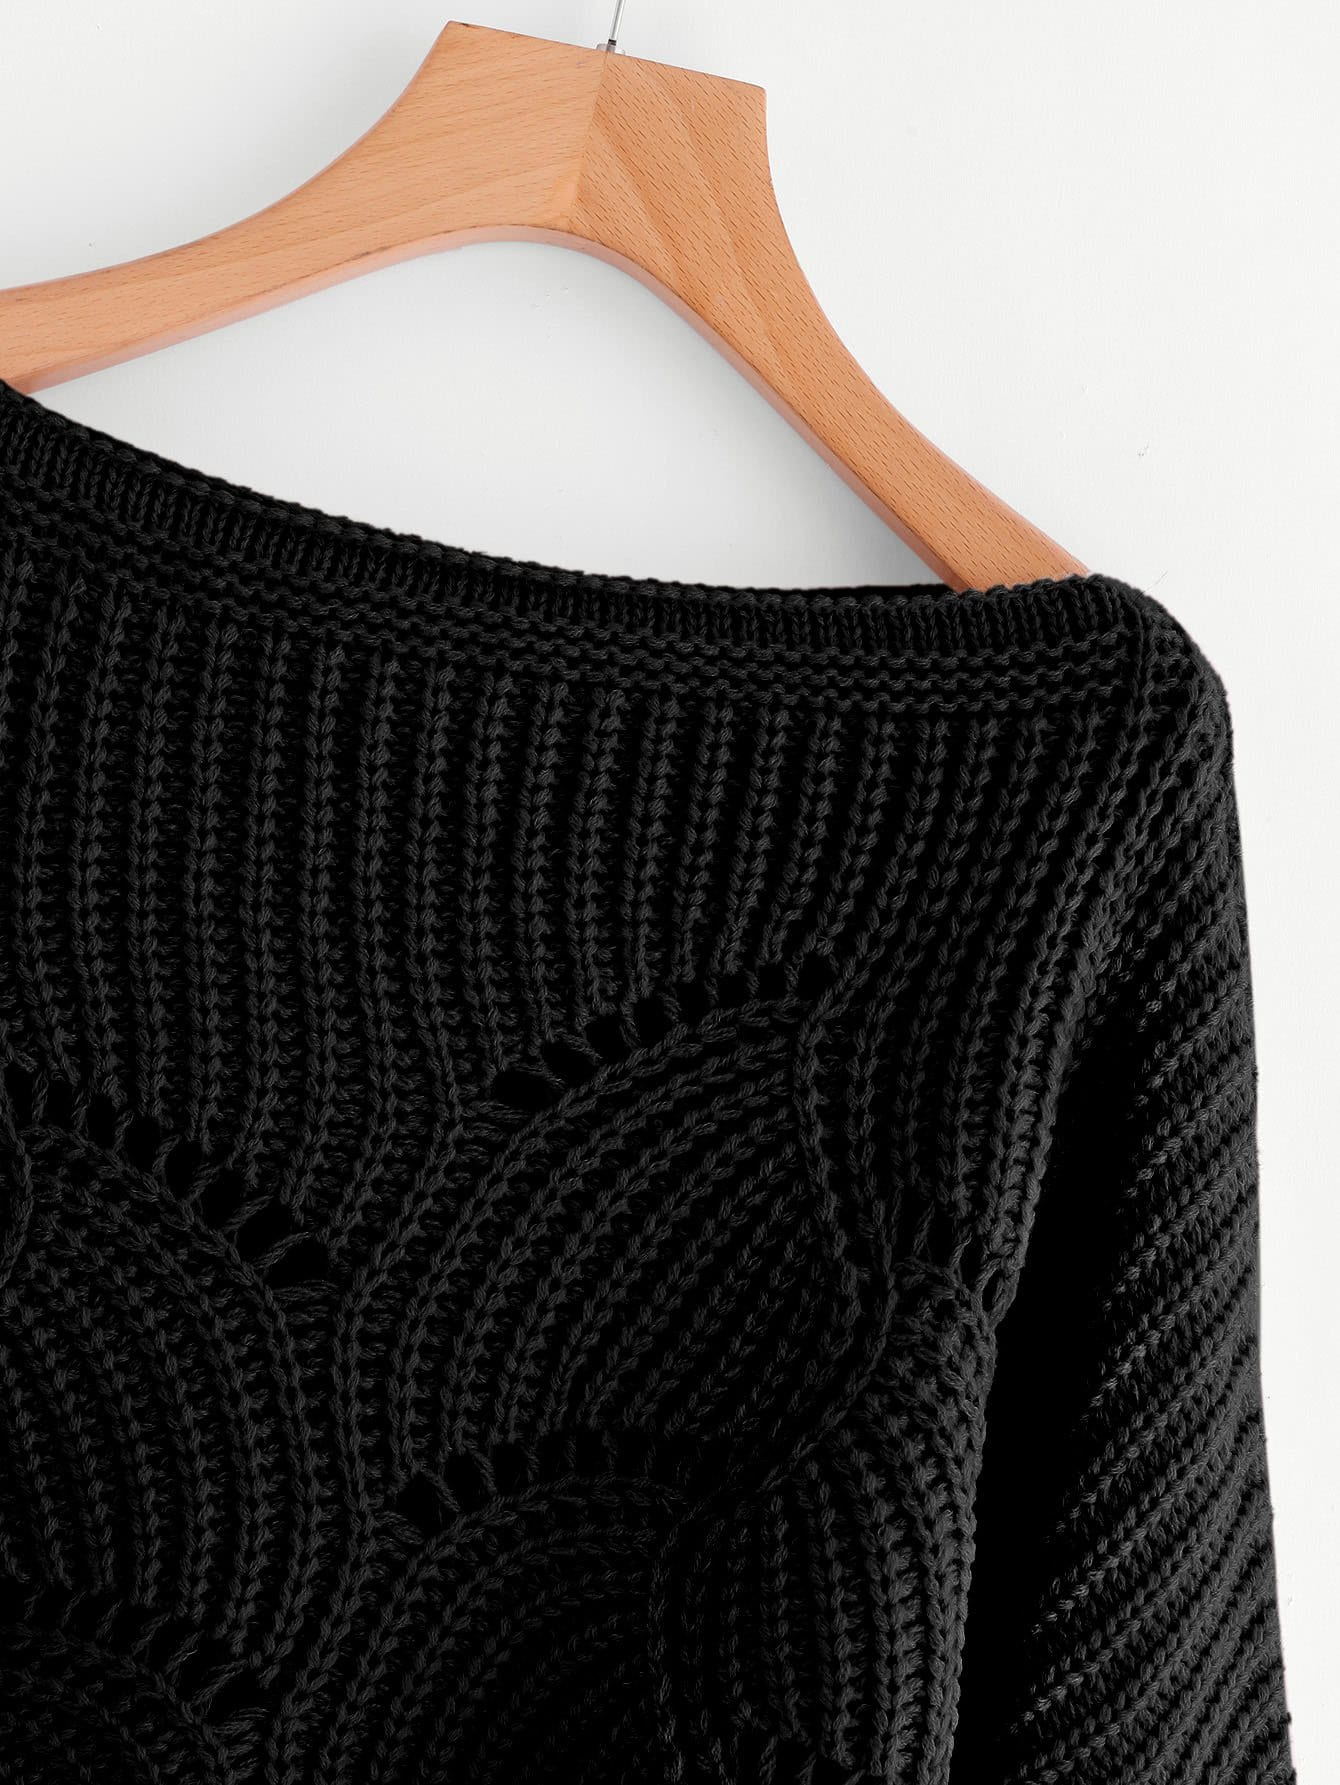 Eyelet Detail Scallop Trim Sweater-Sunshine's Boutique & Gifts